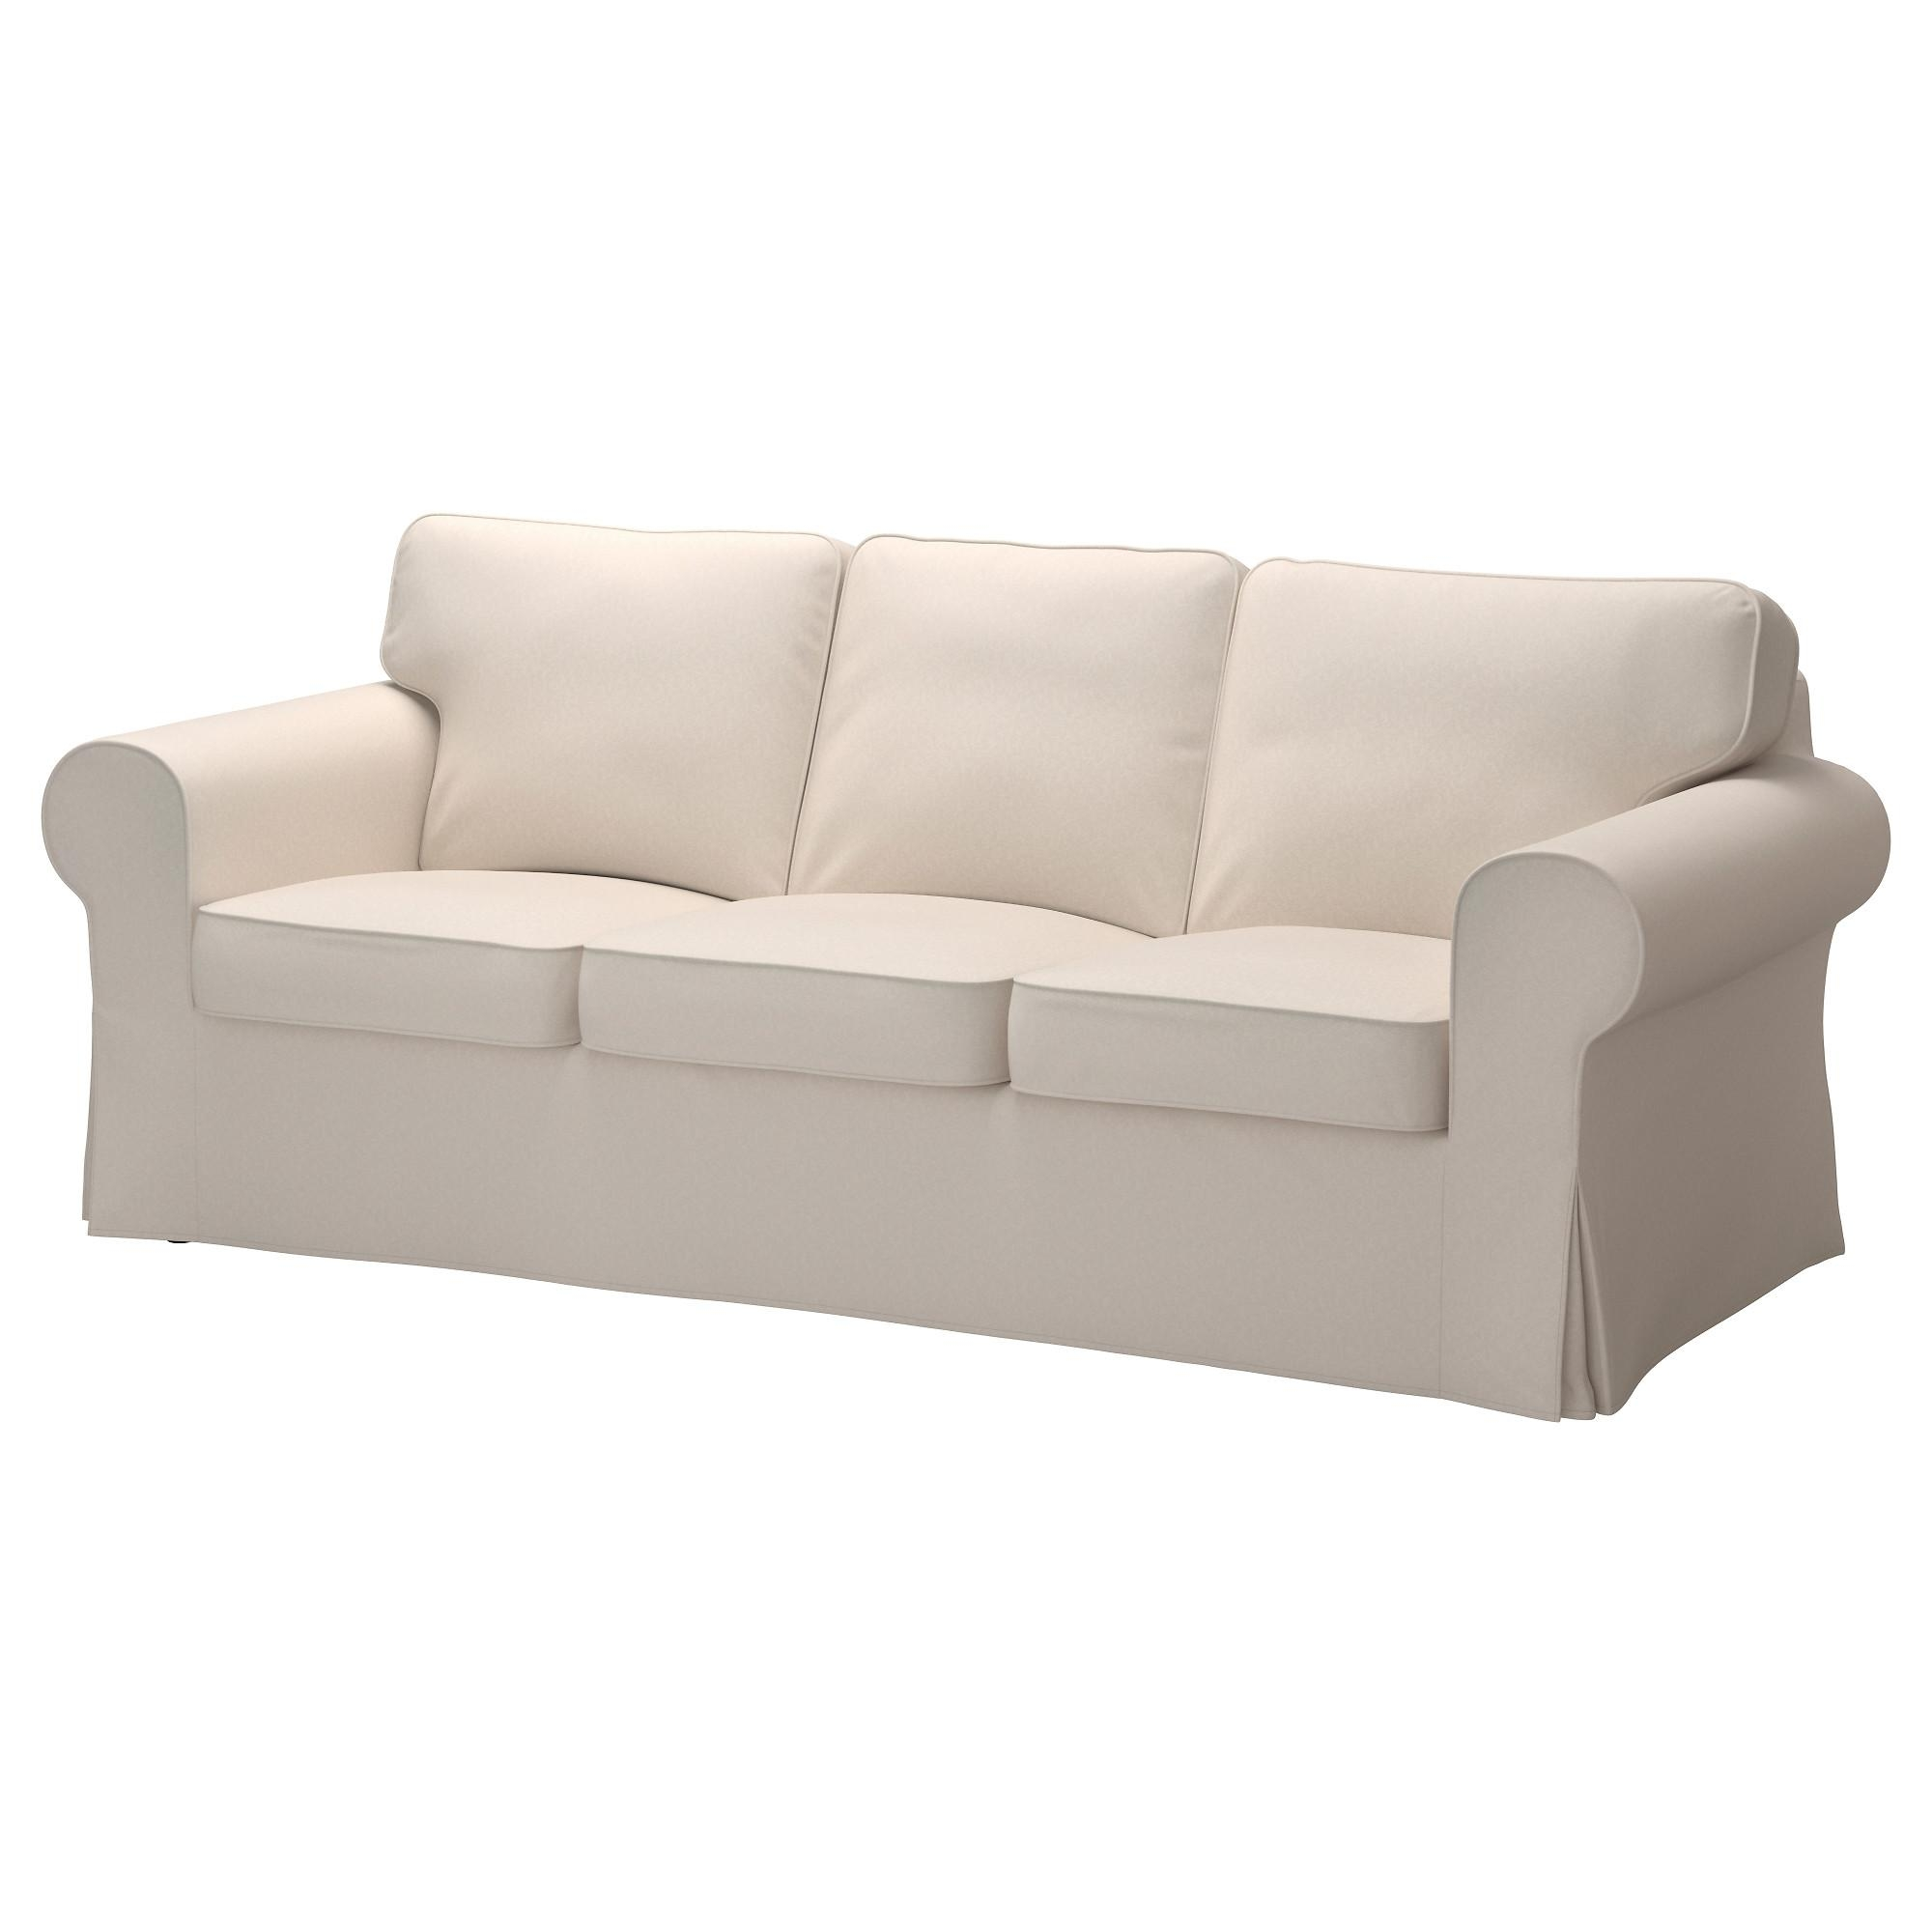 Ektorp Sofa – Lofallet Beige – Ikea Within Sofa Chairs Ikea (Image 6 of 20)